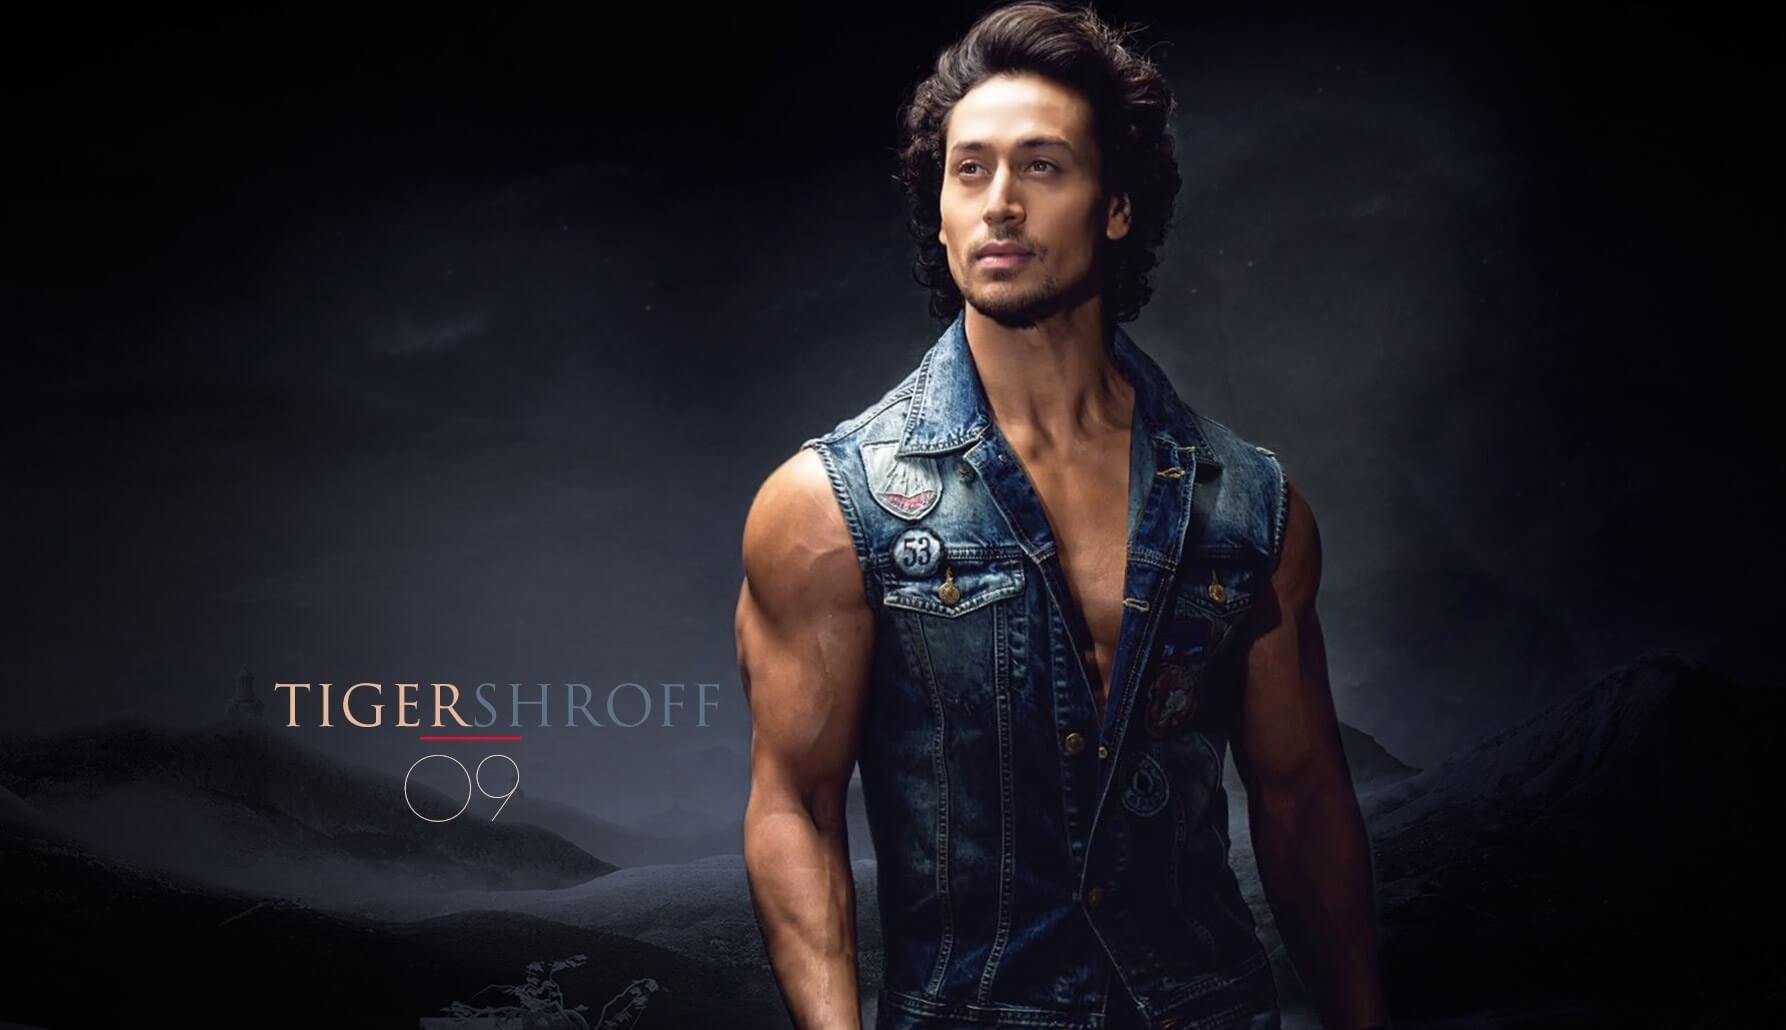 Tiger Shroff Age, Photos(image), Song, Movie, Height, Girlfriend, Sister, Date Of Birth, Net Worth, Biography, Education, Awards, Instagram, Twitter, Facebook, Wiki, Imdb, Youtube (55)